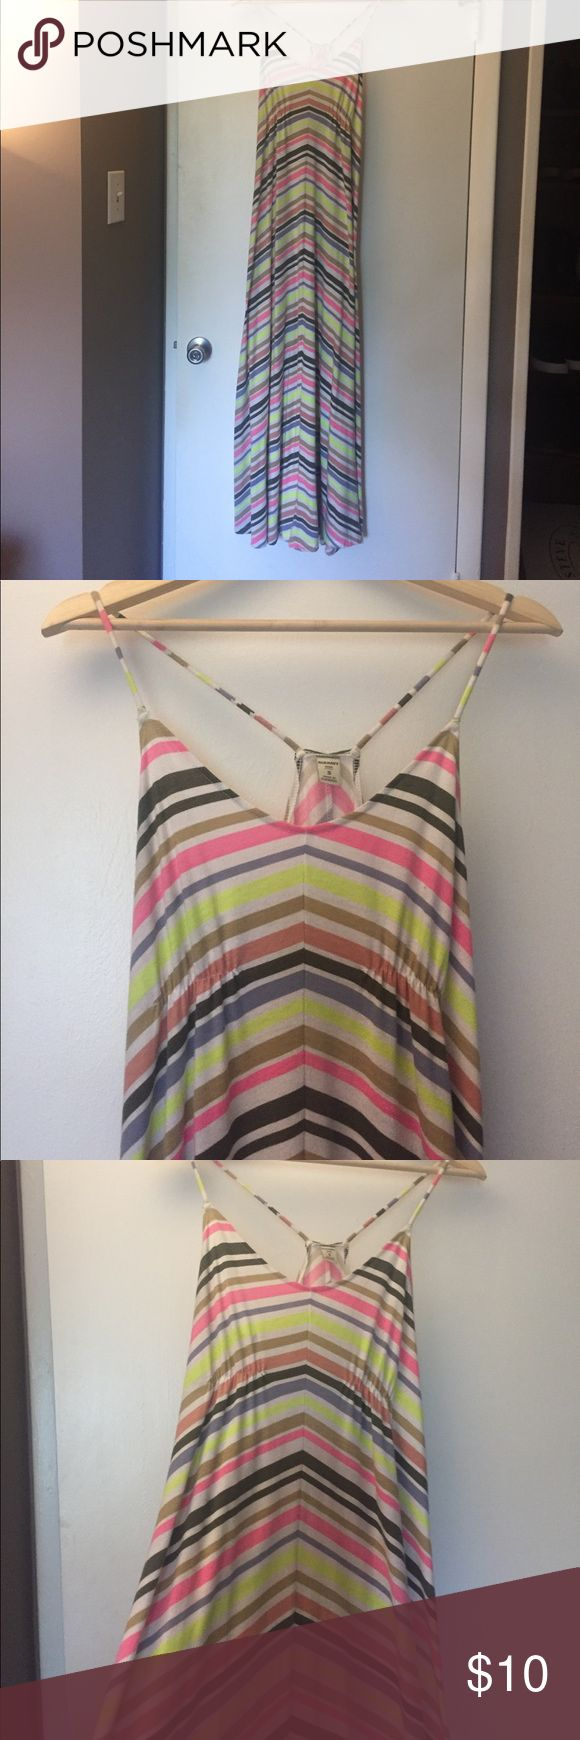 Old Navy multi-color chevron maxi dress, Sz small Great summer maxi dress, white base with multi-color chevron striped. Spaghetti straps and racerback. Some pilling from wear but overall good condition. Old Navy Dresses Maxi